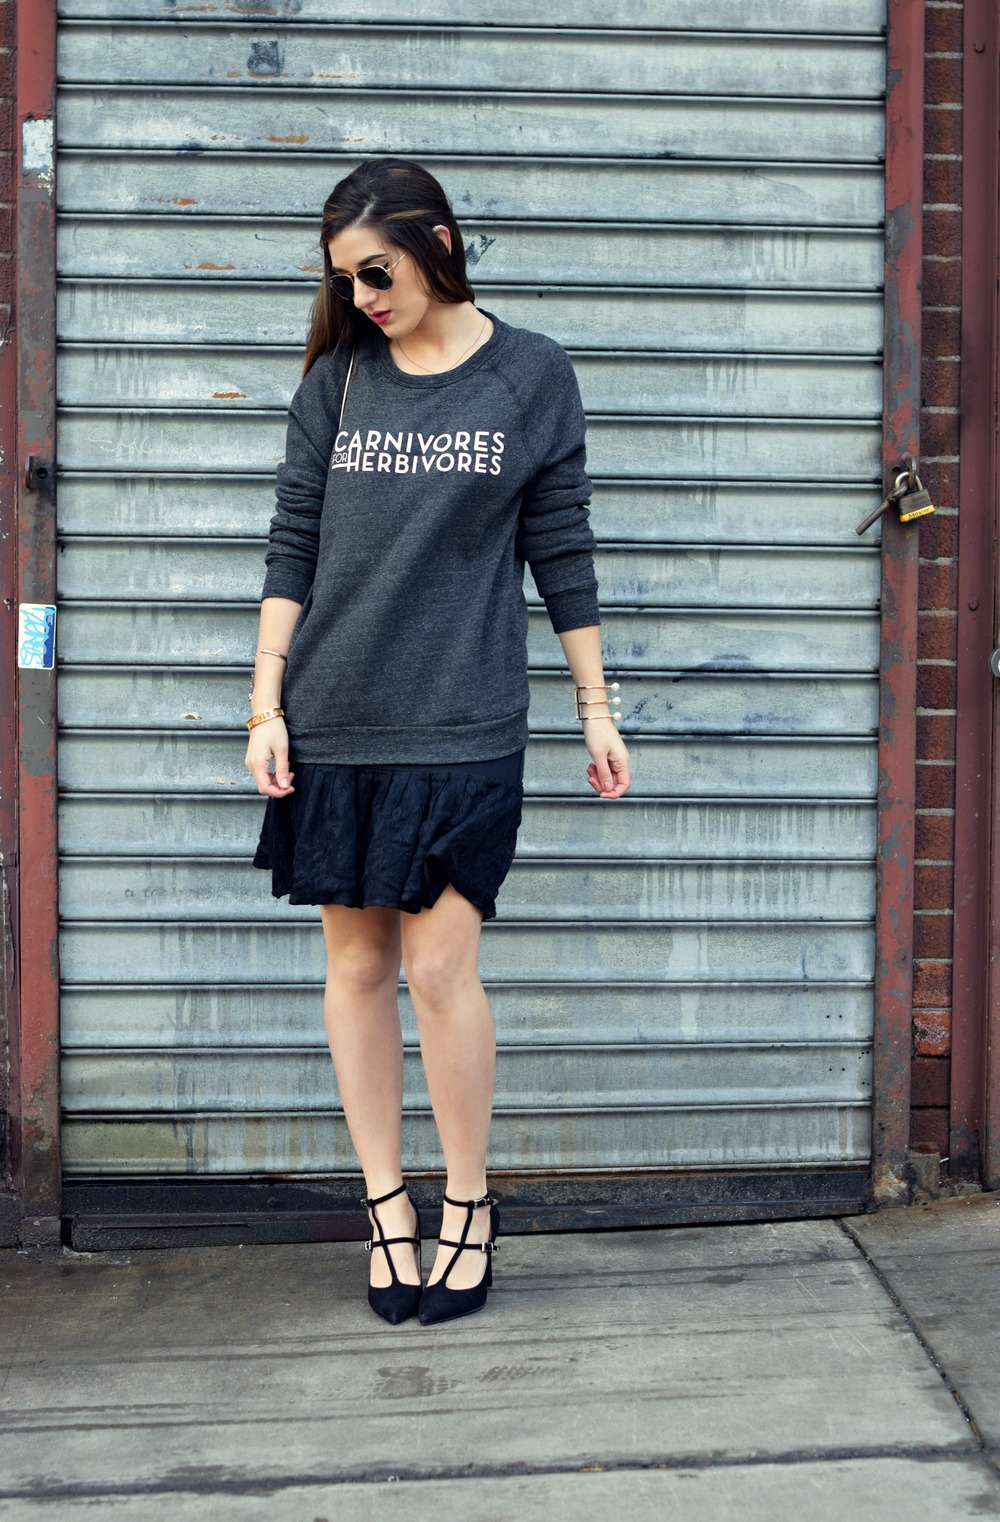 Carnivores For Herbivores Fauxgerty Louboutins & Love Fashion Blog Esther Santer NYC Street Style Blogger Animal Lover Cruelty Free Suede Vegan Leather RayBan Aviators Sunglasses Grey Sweatshirt Lace Skirt Girl Women OOTD Outfit USA Outerwear Shop.jpg